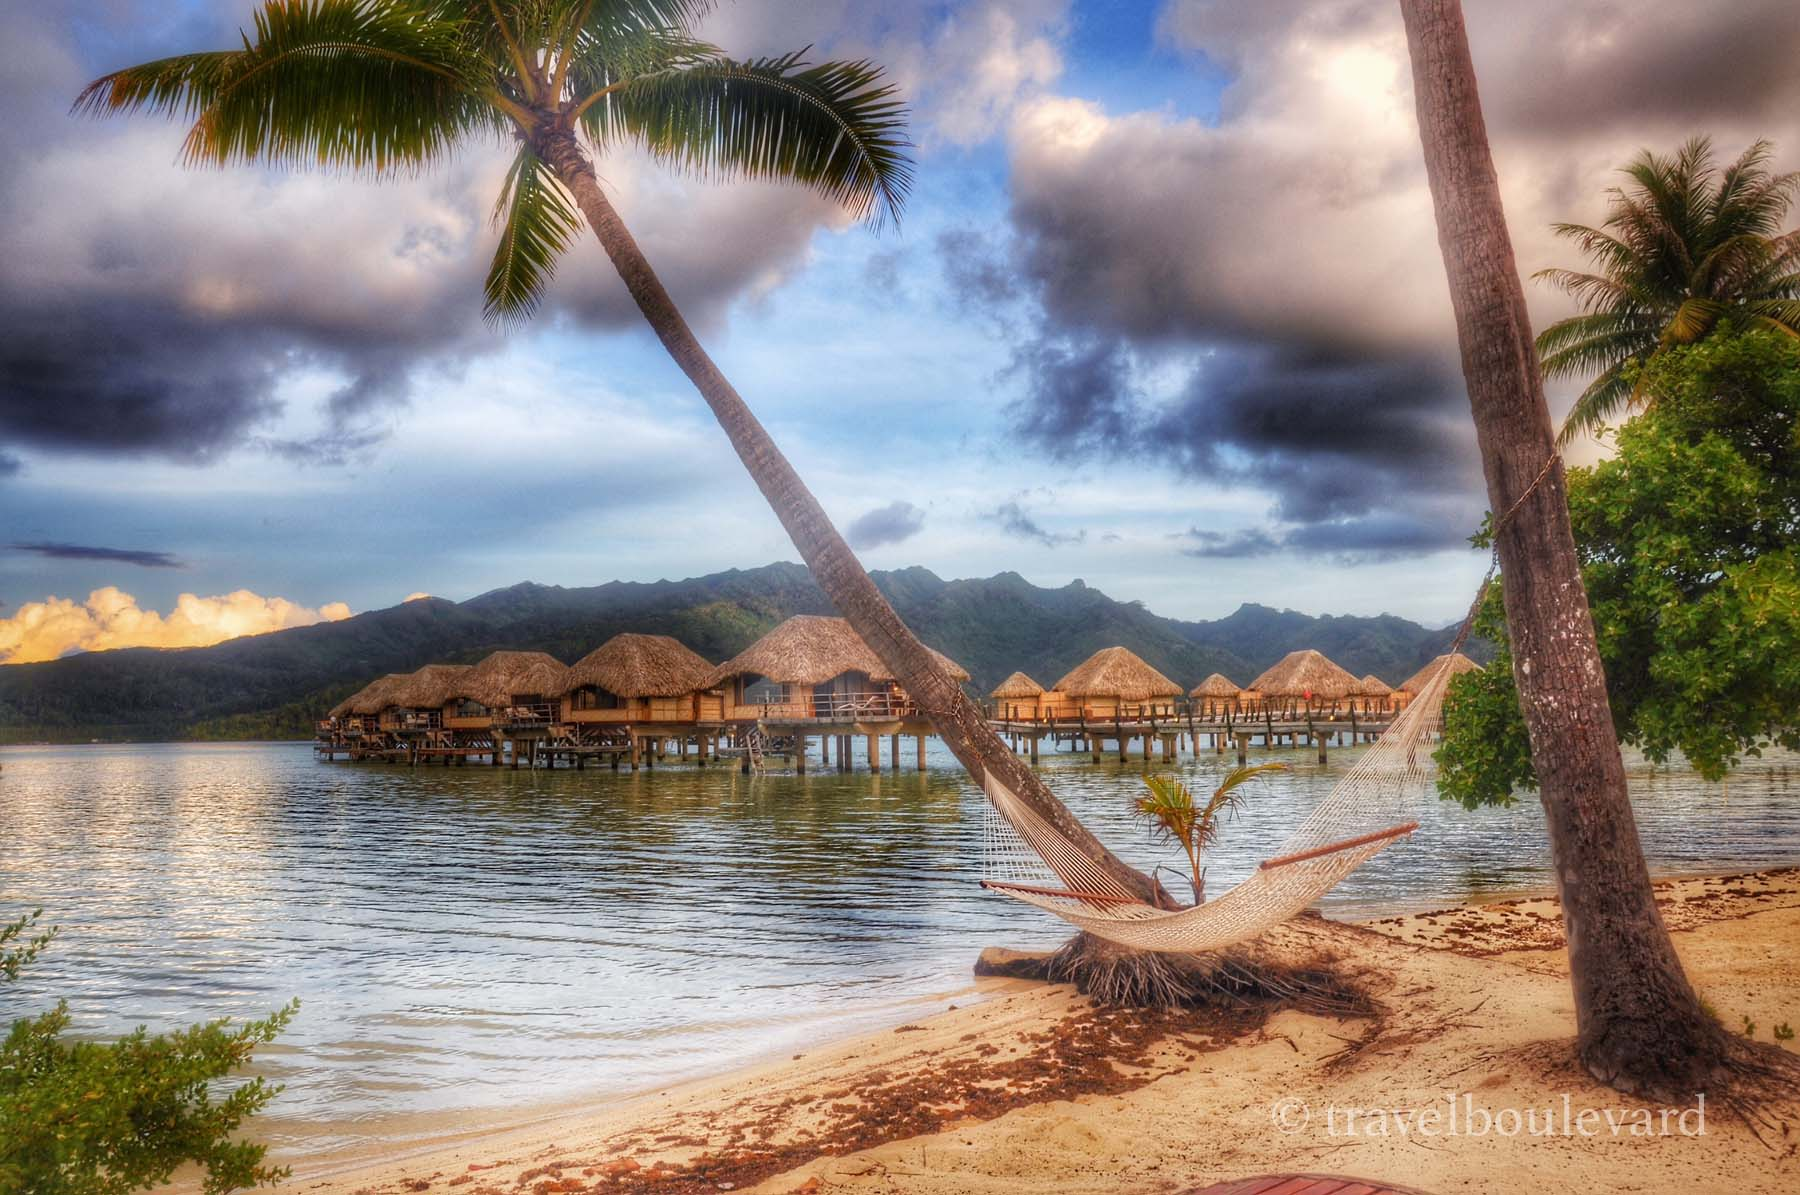 Where Is Bali Hai Island 23 cool facts you probably didn't know about tahiti and her